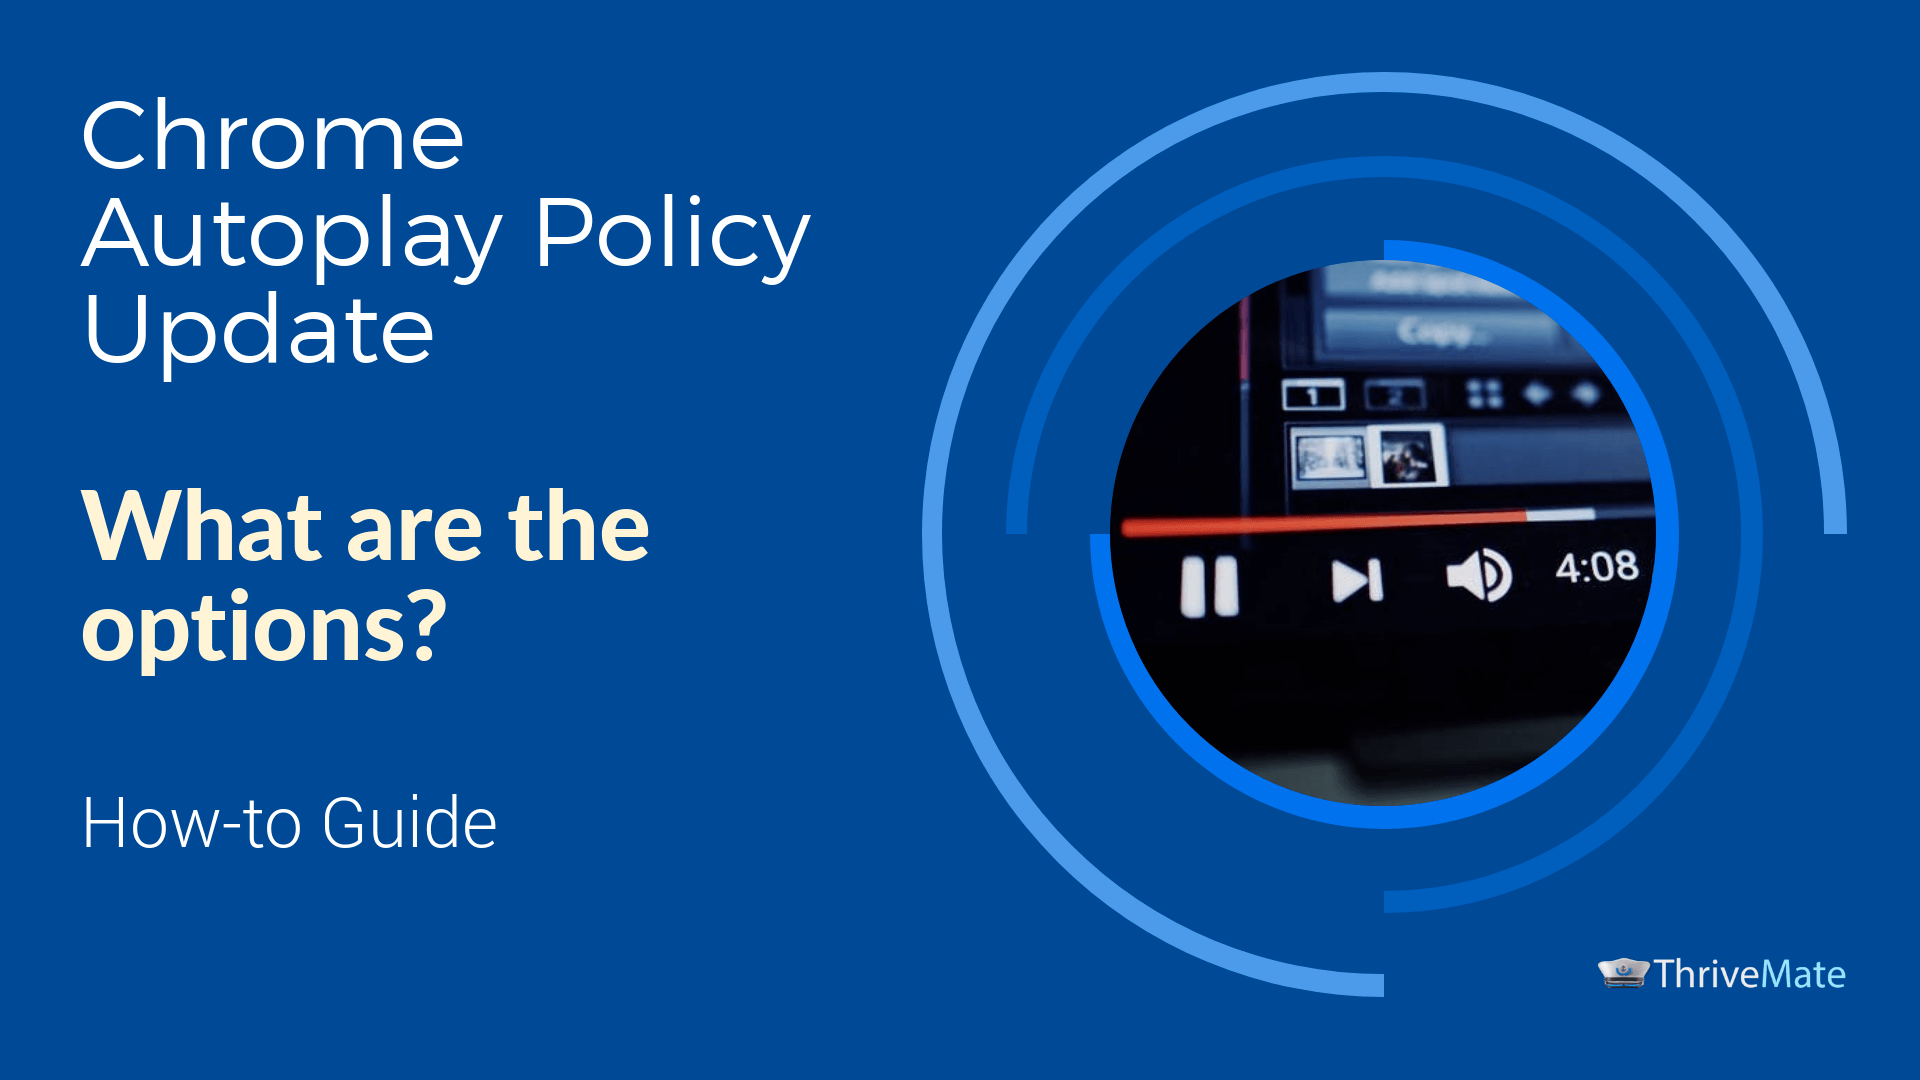 Chrome Autoplay Policy Update: What are the options